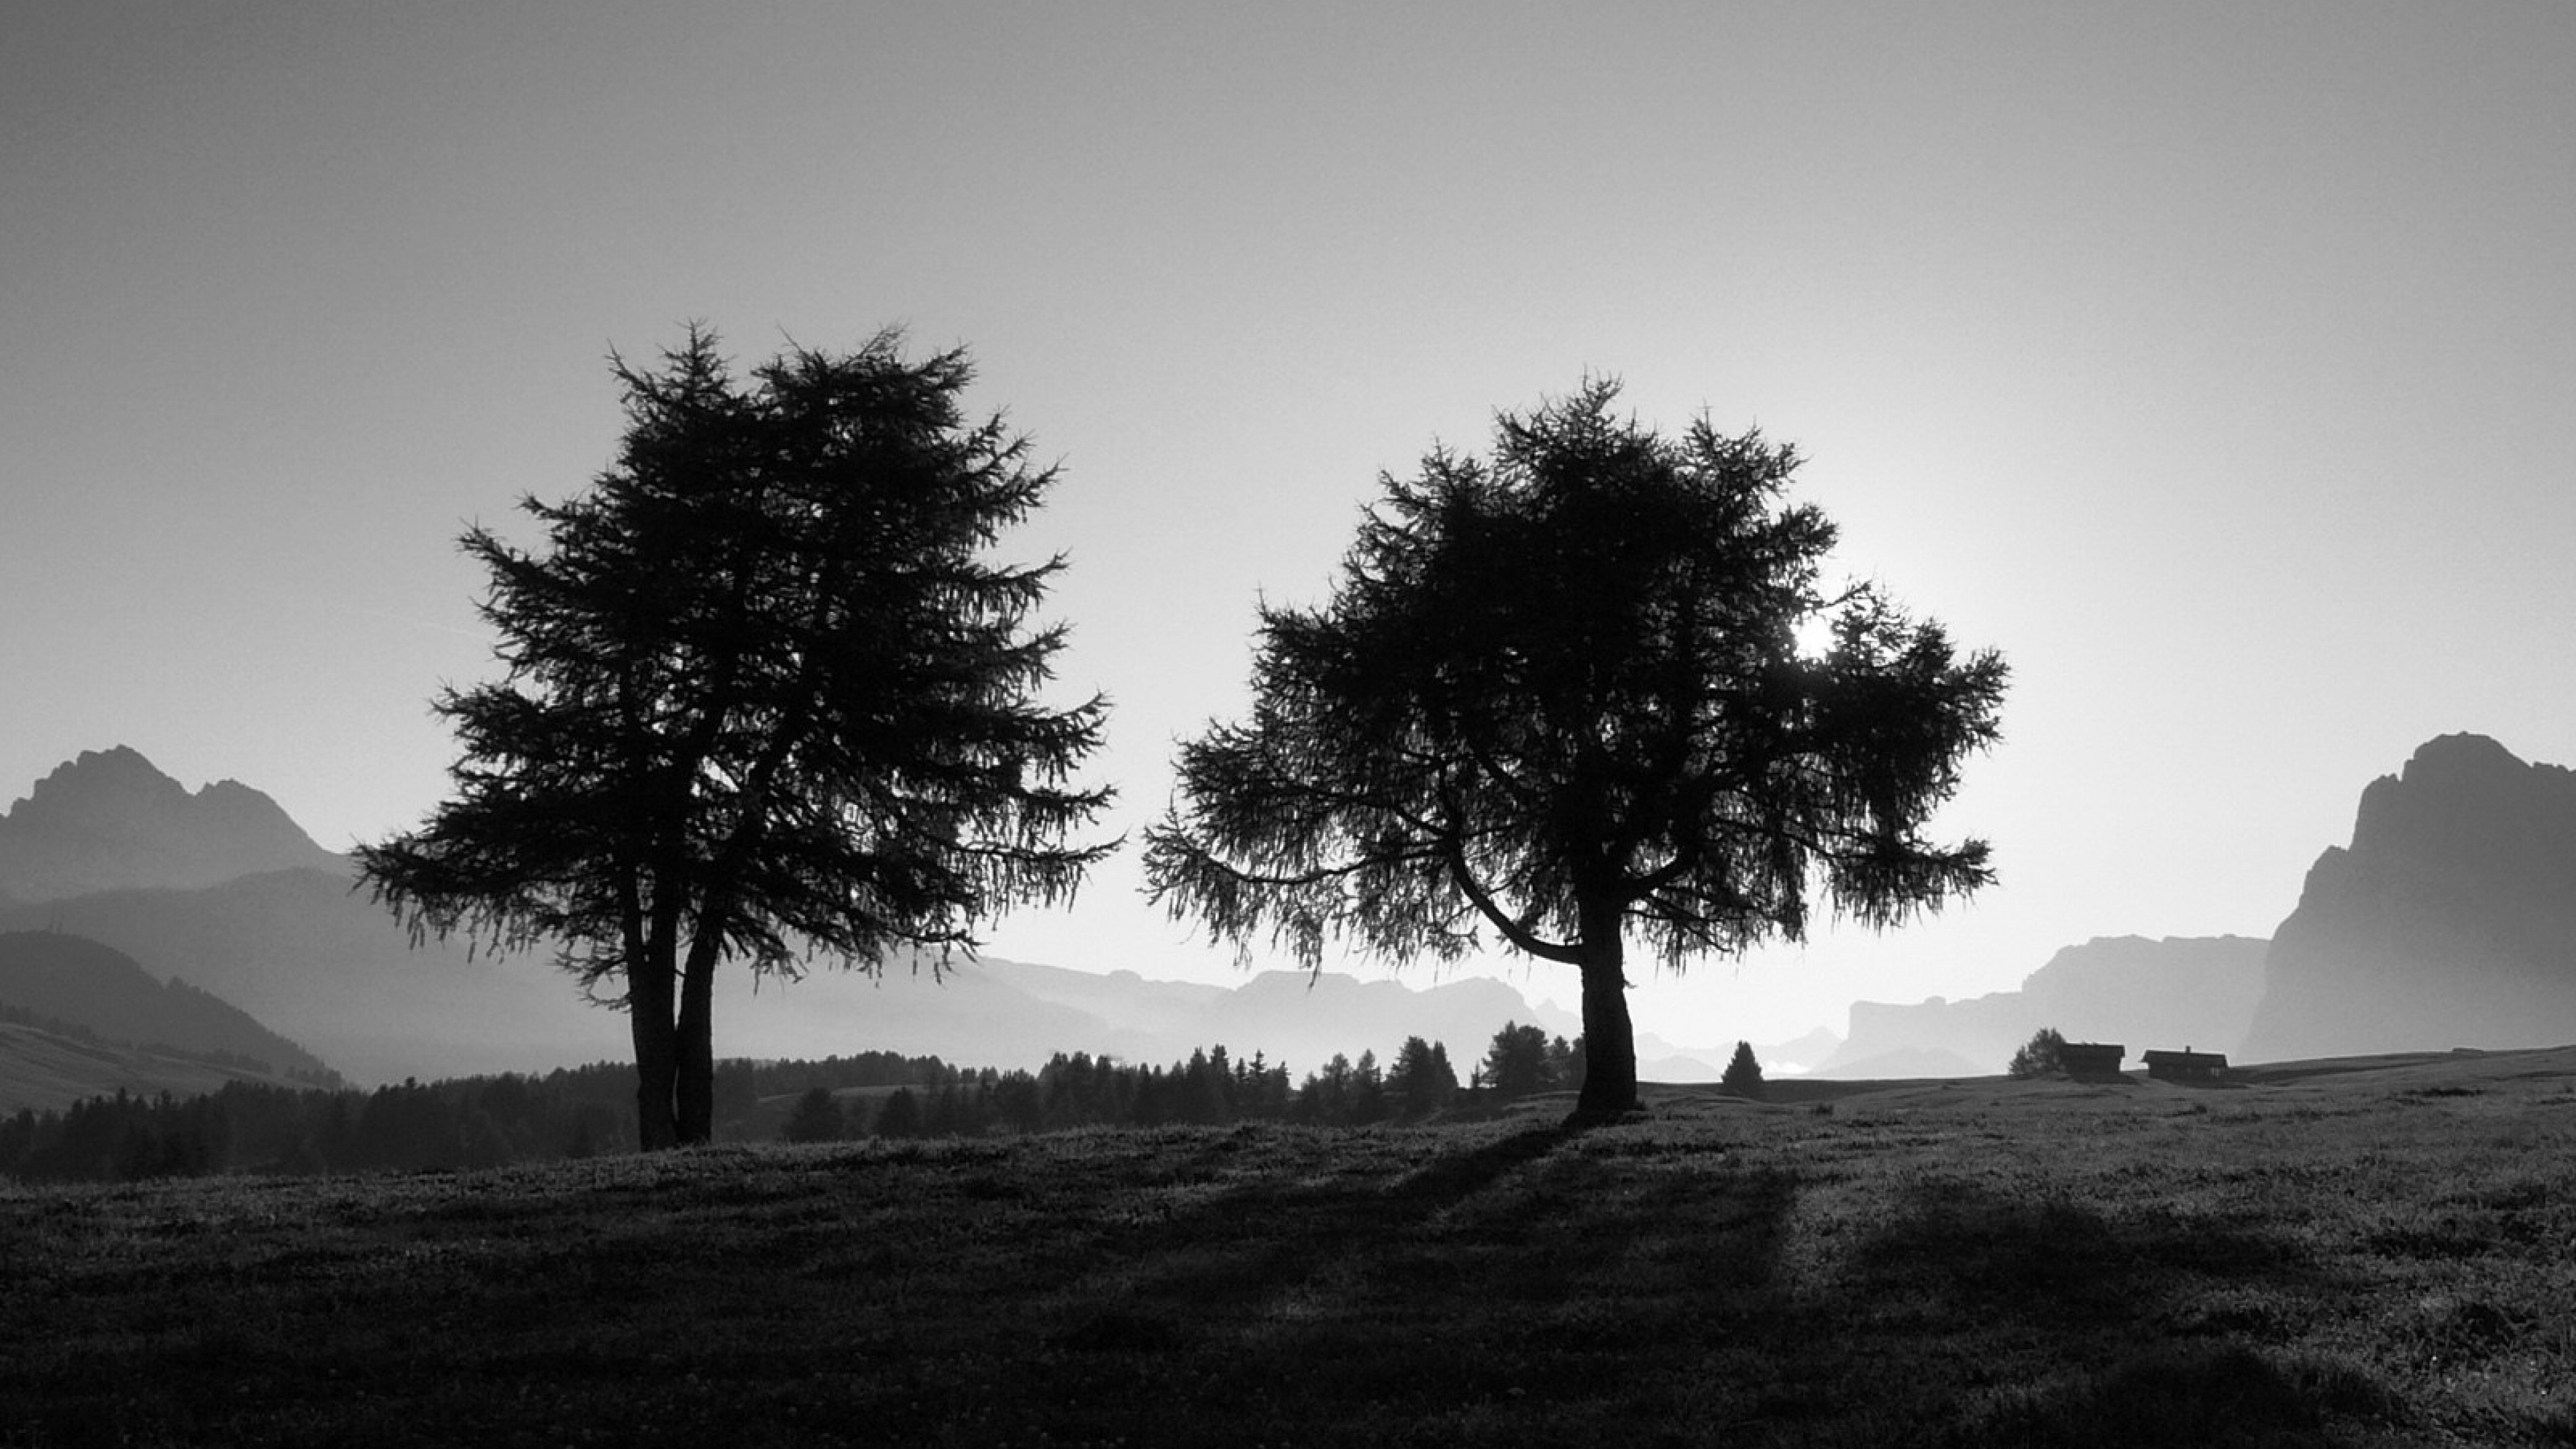 Download Wallpaper 3840x2160 trees slope black and white 4K Ultra HD 3840x2160